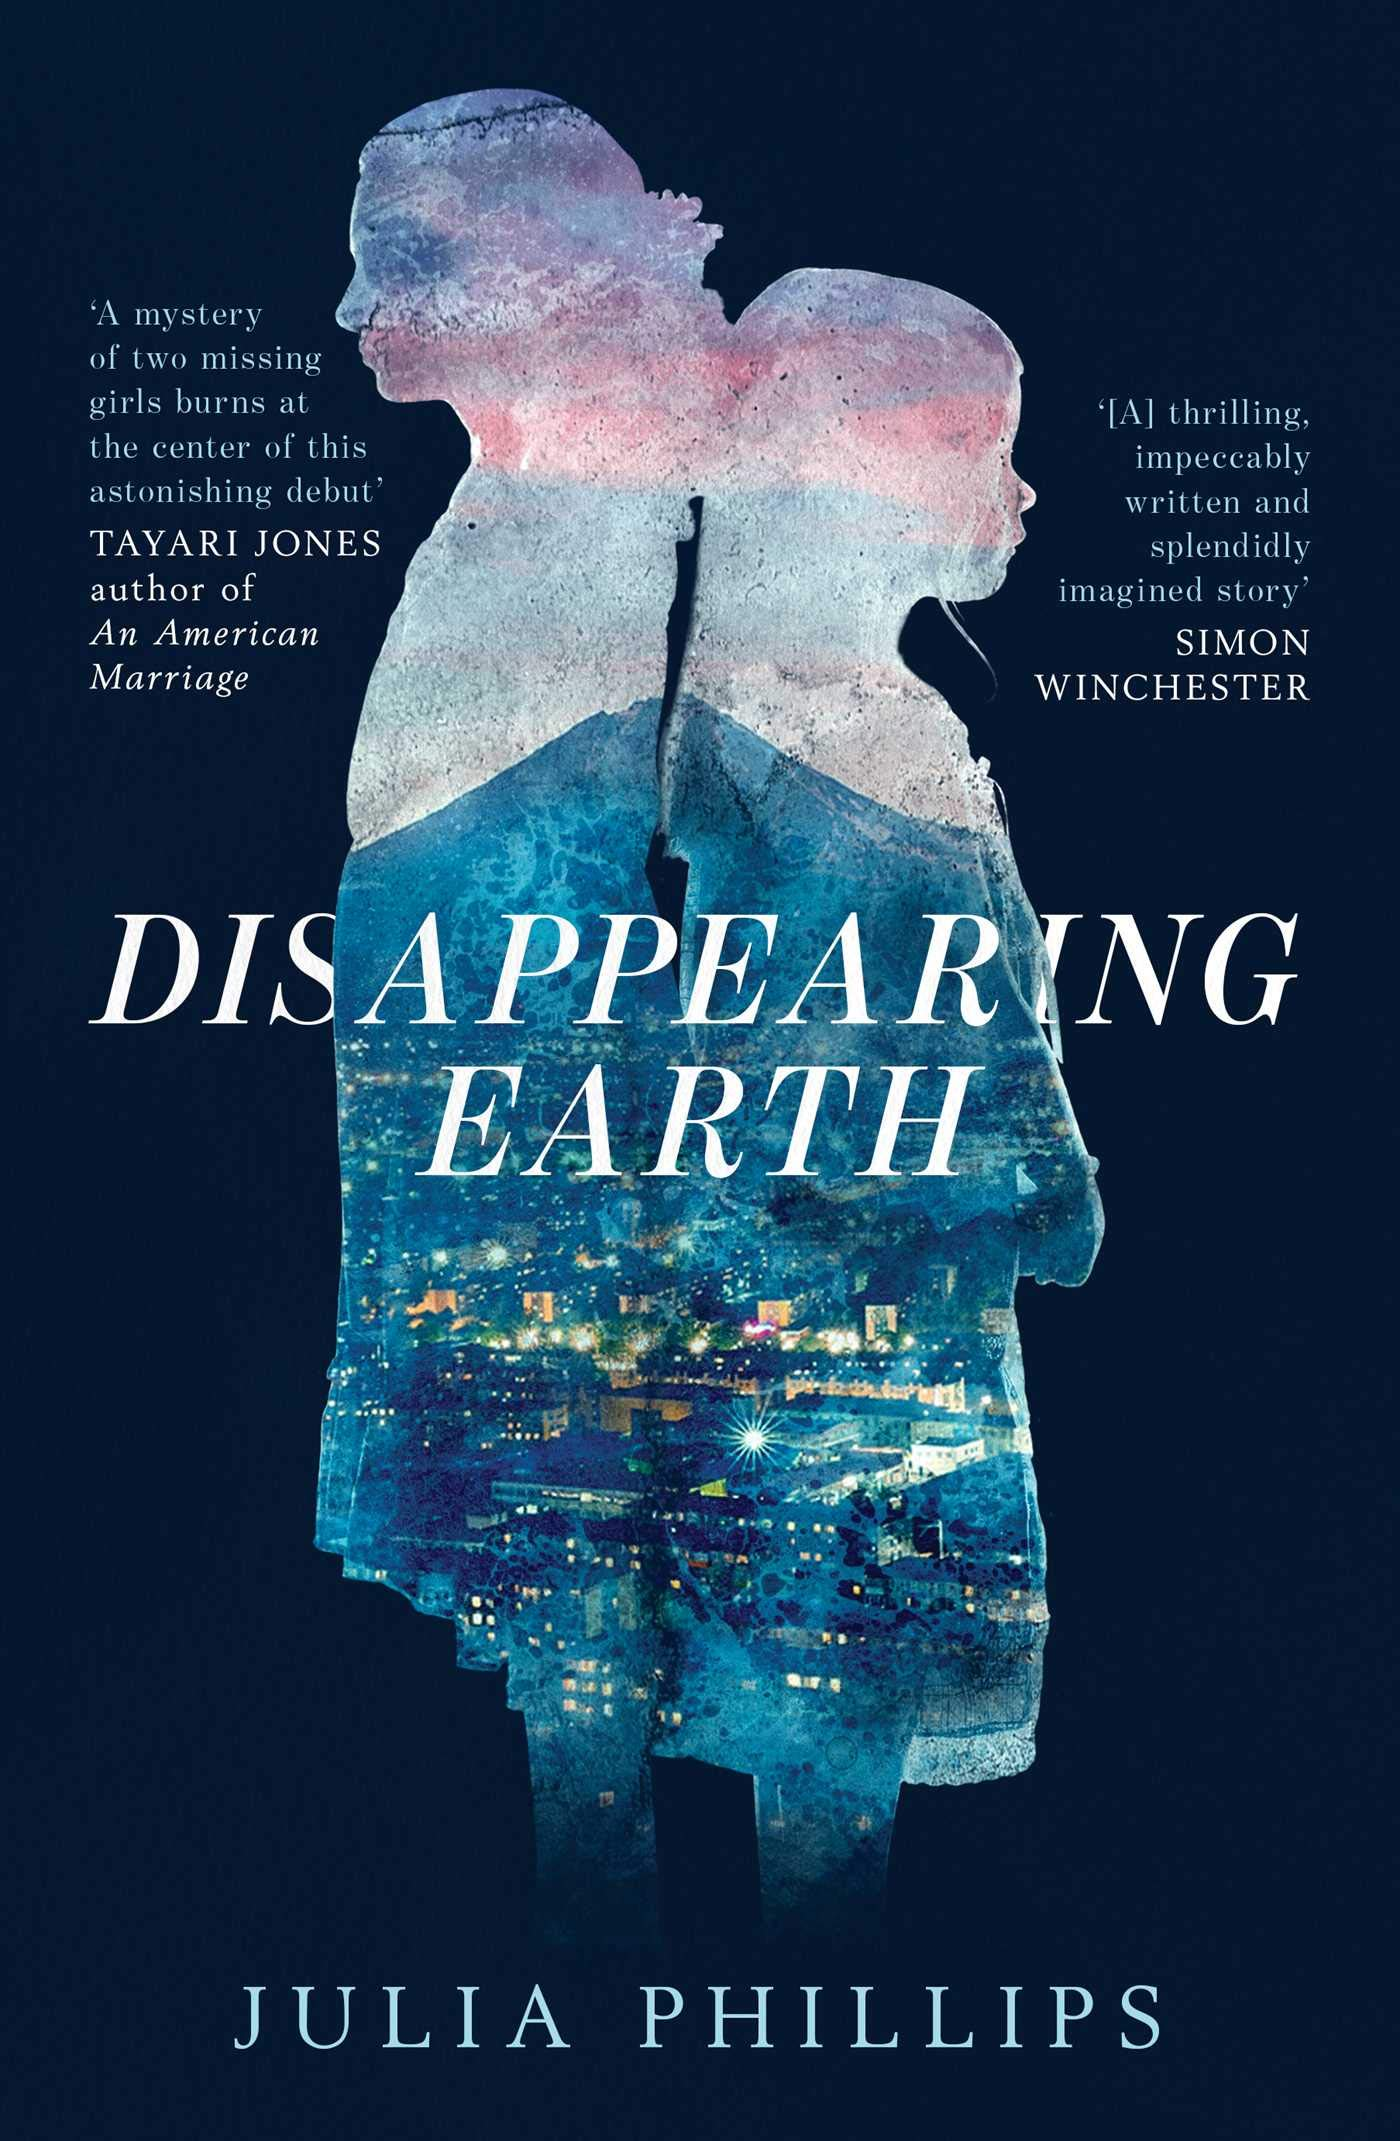 Disappearing Earth: Julia Phillips: 9781471185861: Amazon.com: Books